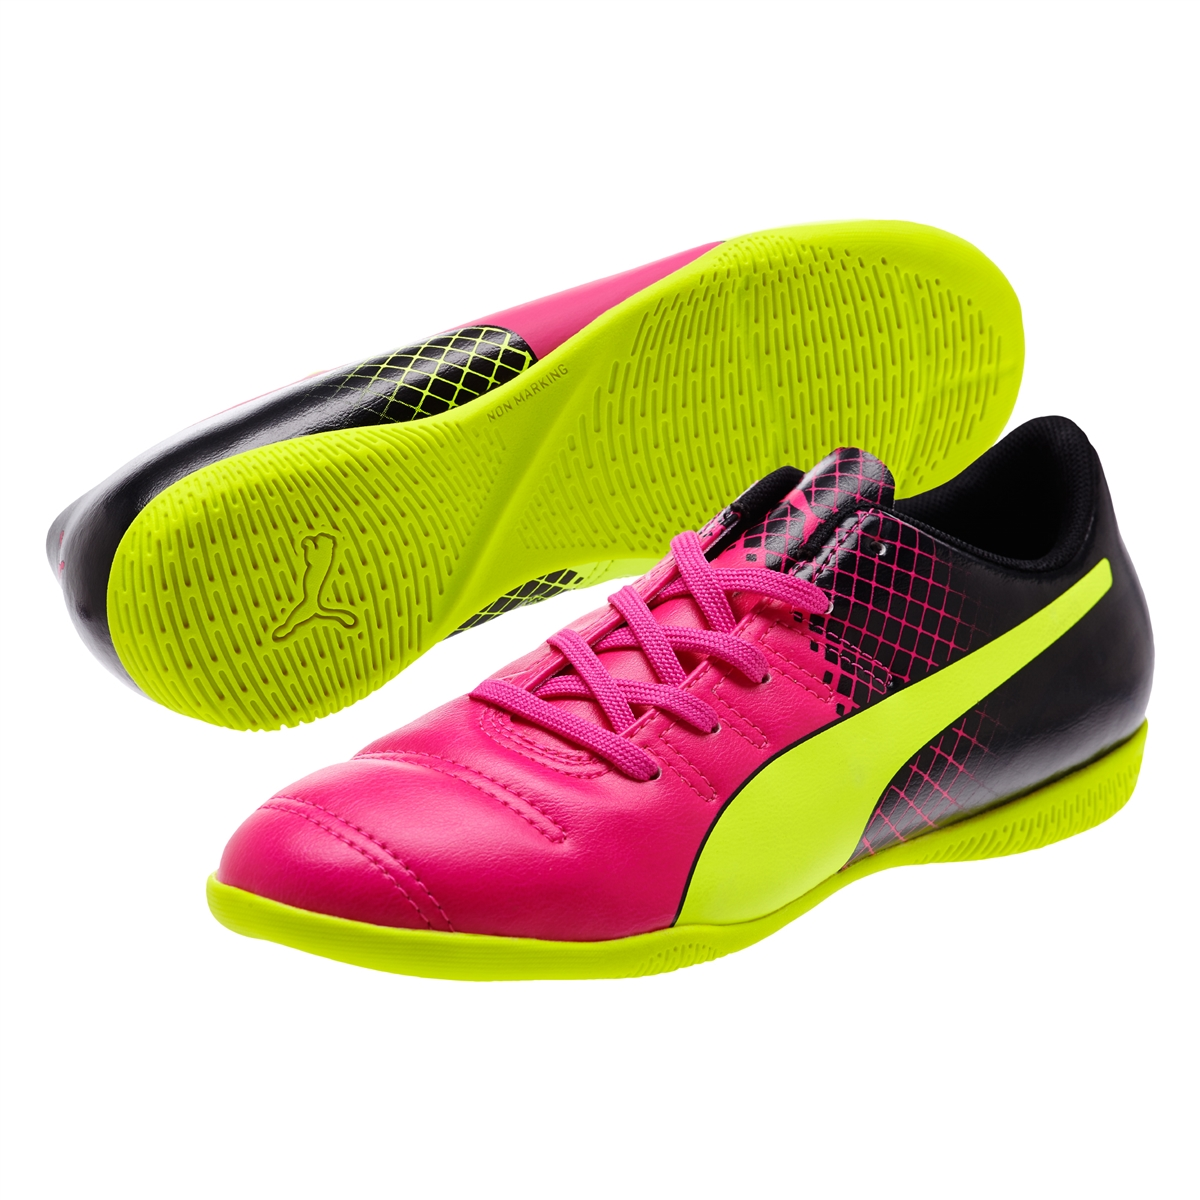 336bfec63 $49.99 - Puma evoPOWER 4.3 Tricks Youth IT Indoor Soccer Shoes (Pink ...